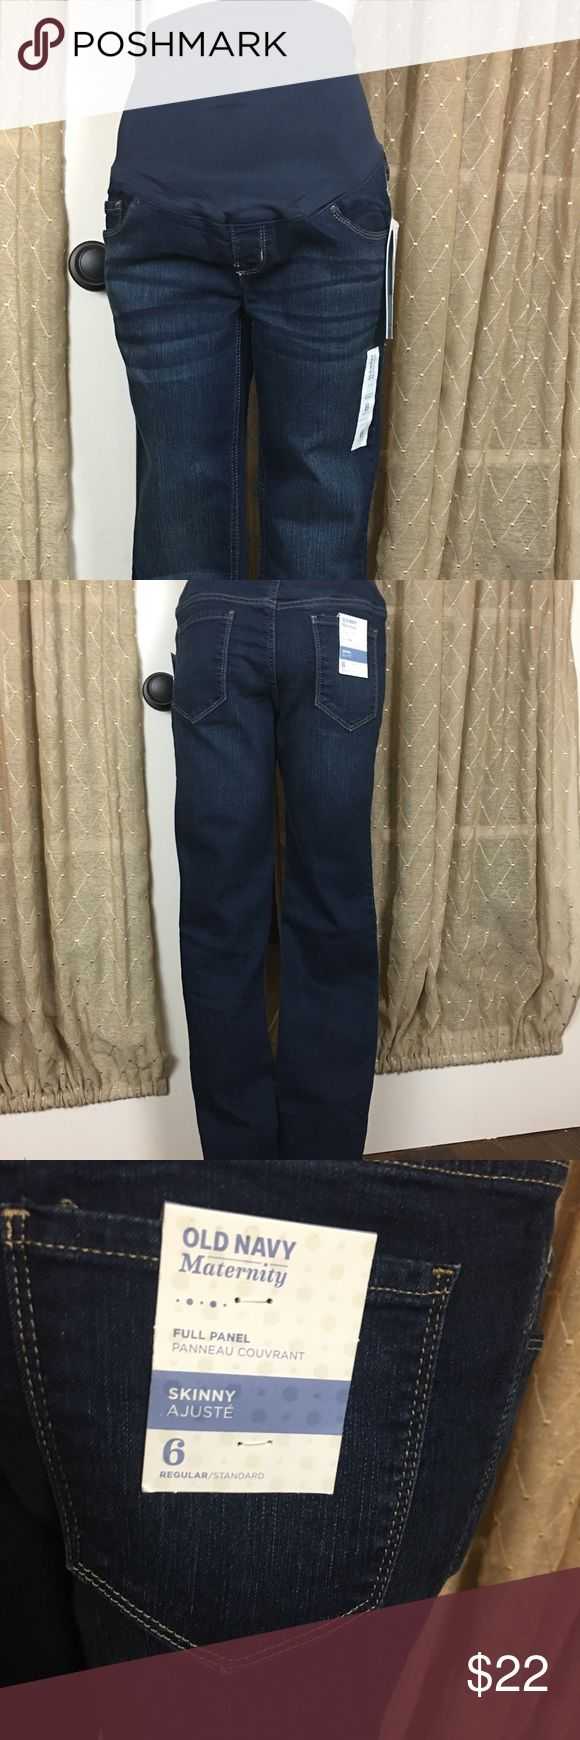 NWT - Old Navy Maternity Jeans NWT - Old Navy Maternity Pants - skinny fit Old Navy Jeans